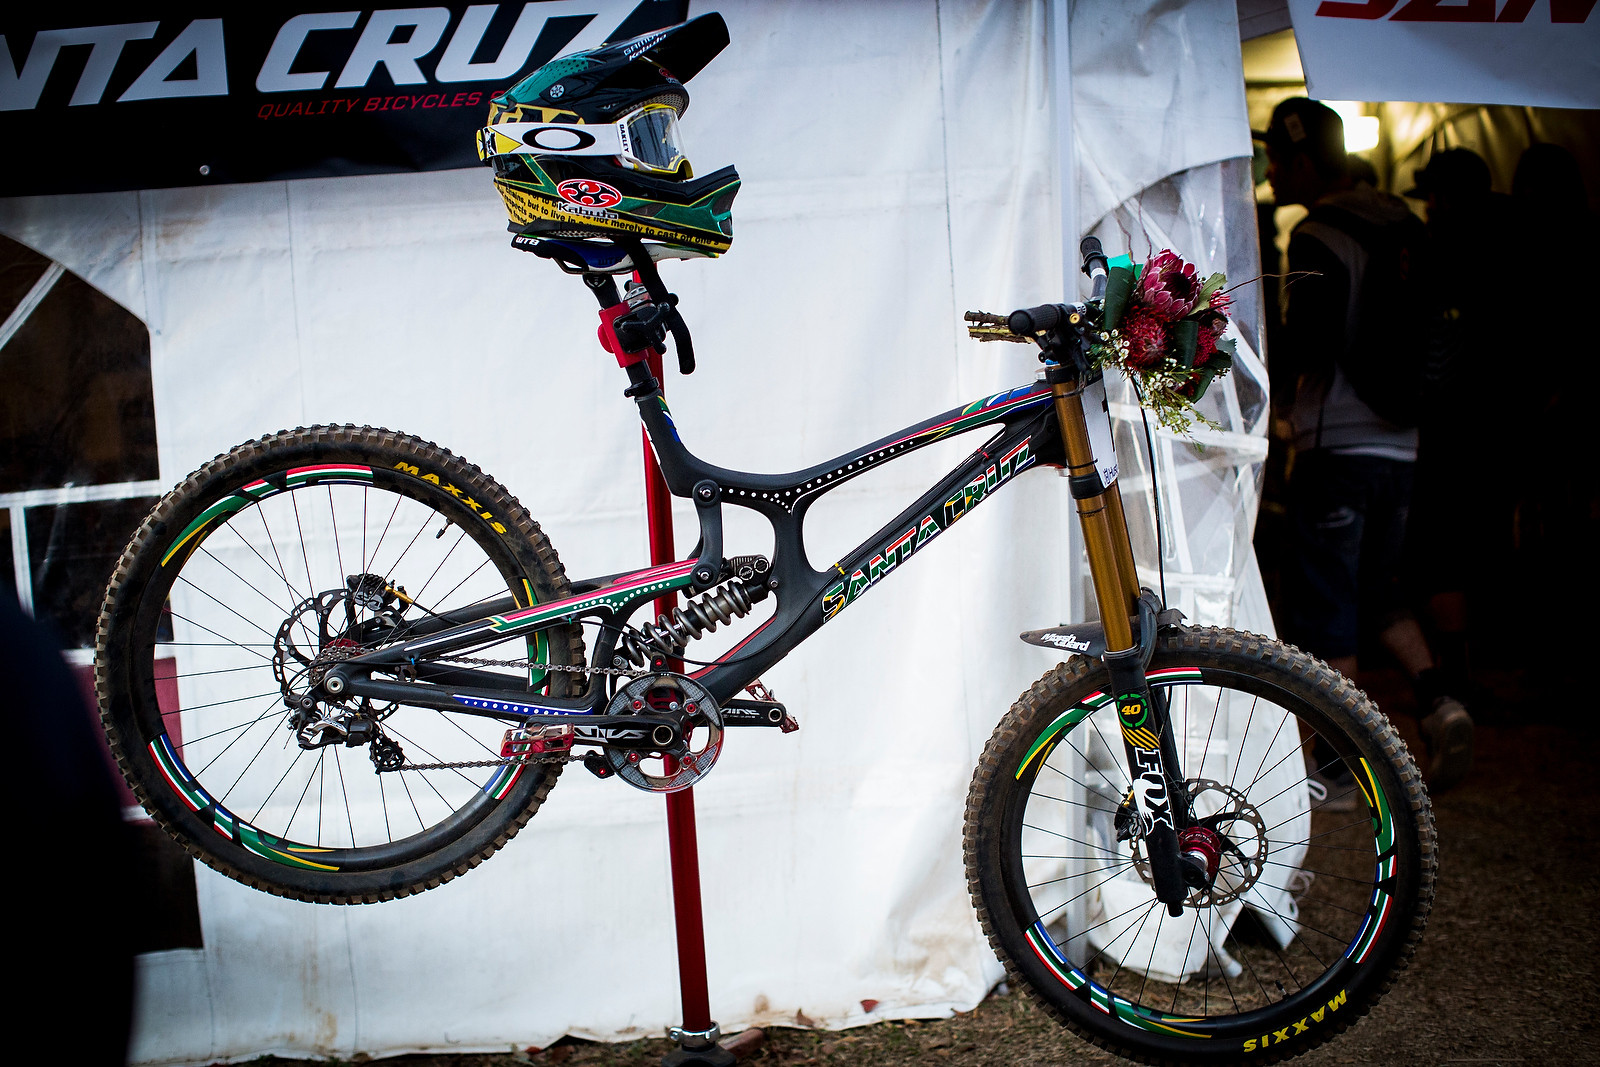 WINNING BIKE: Greg Minnaar's World Champs Santa Cruz V10c - WINNING BIKE: Greg Minnaar's World Champs Santa Cruz V10c - Mountain Biking Pictures - Vital MTB